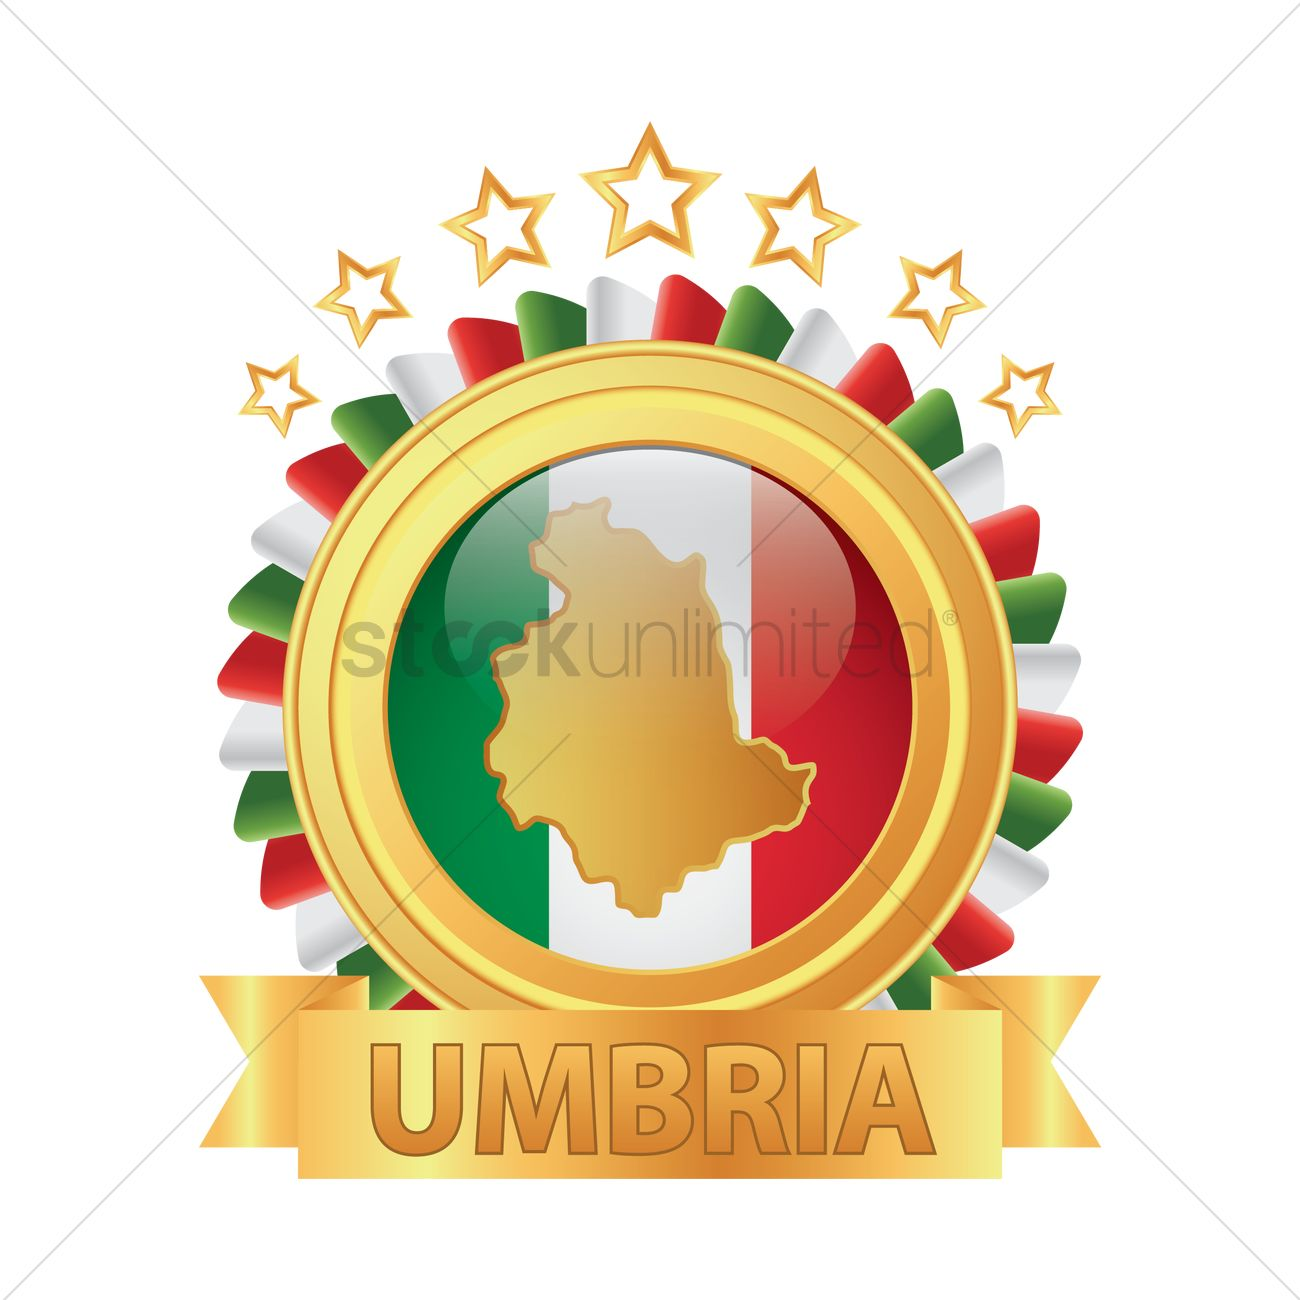 Umbria map Vector Image.